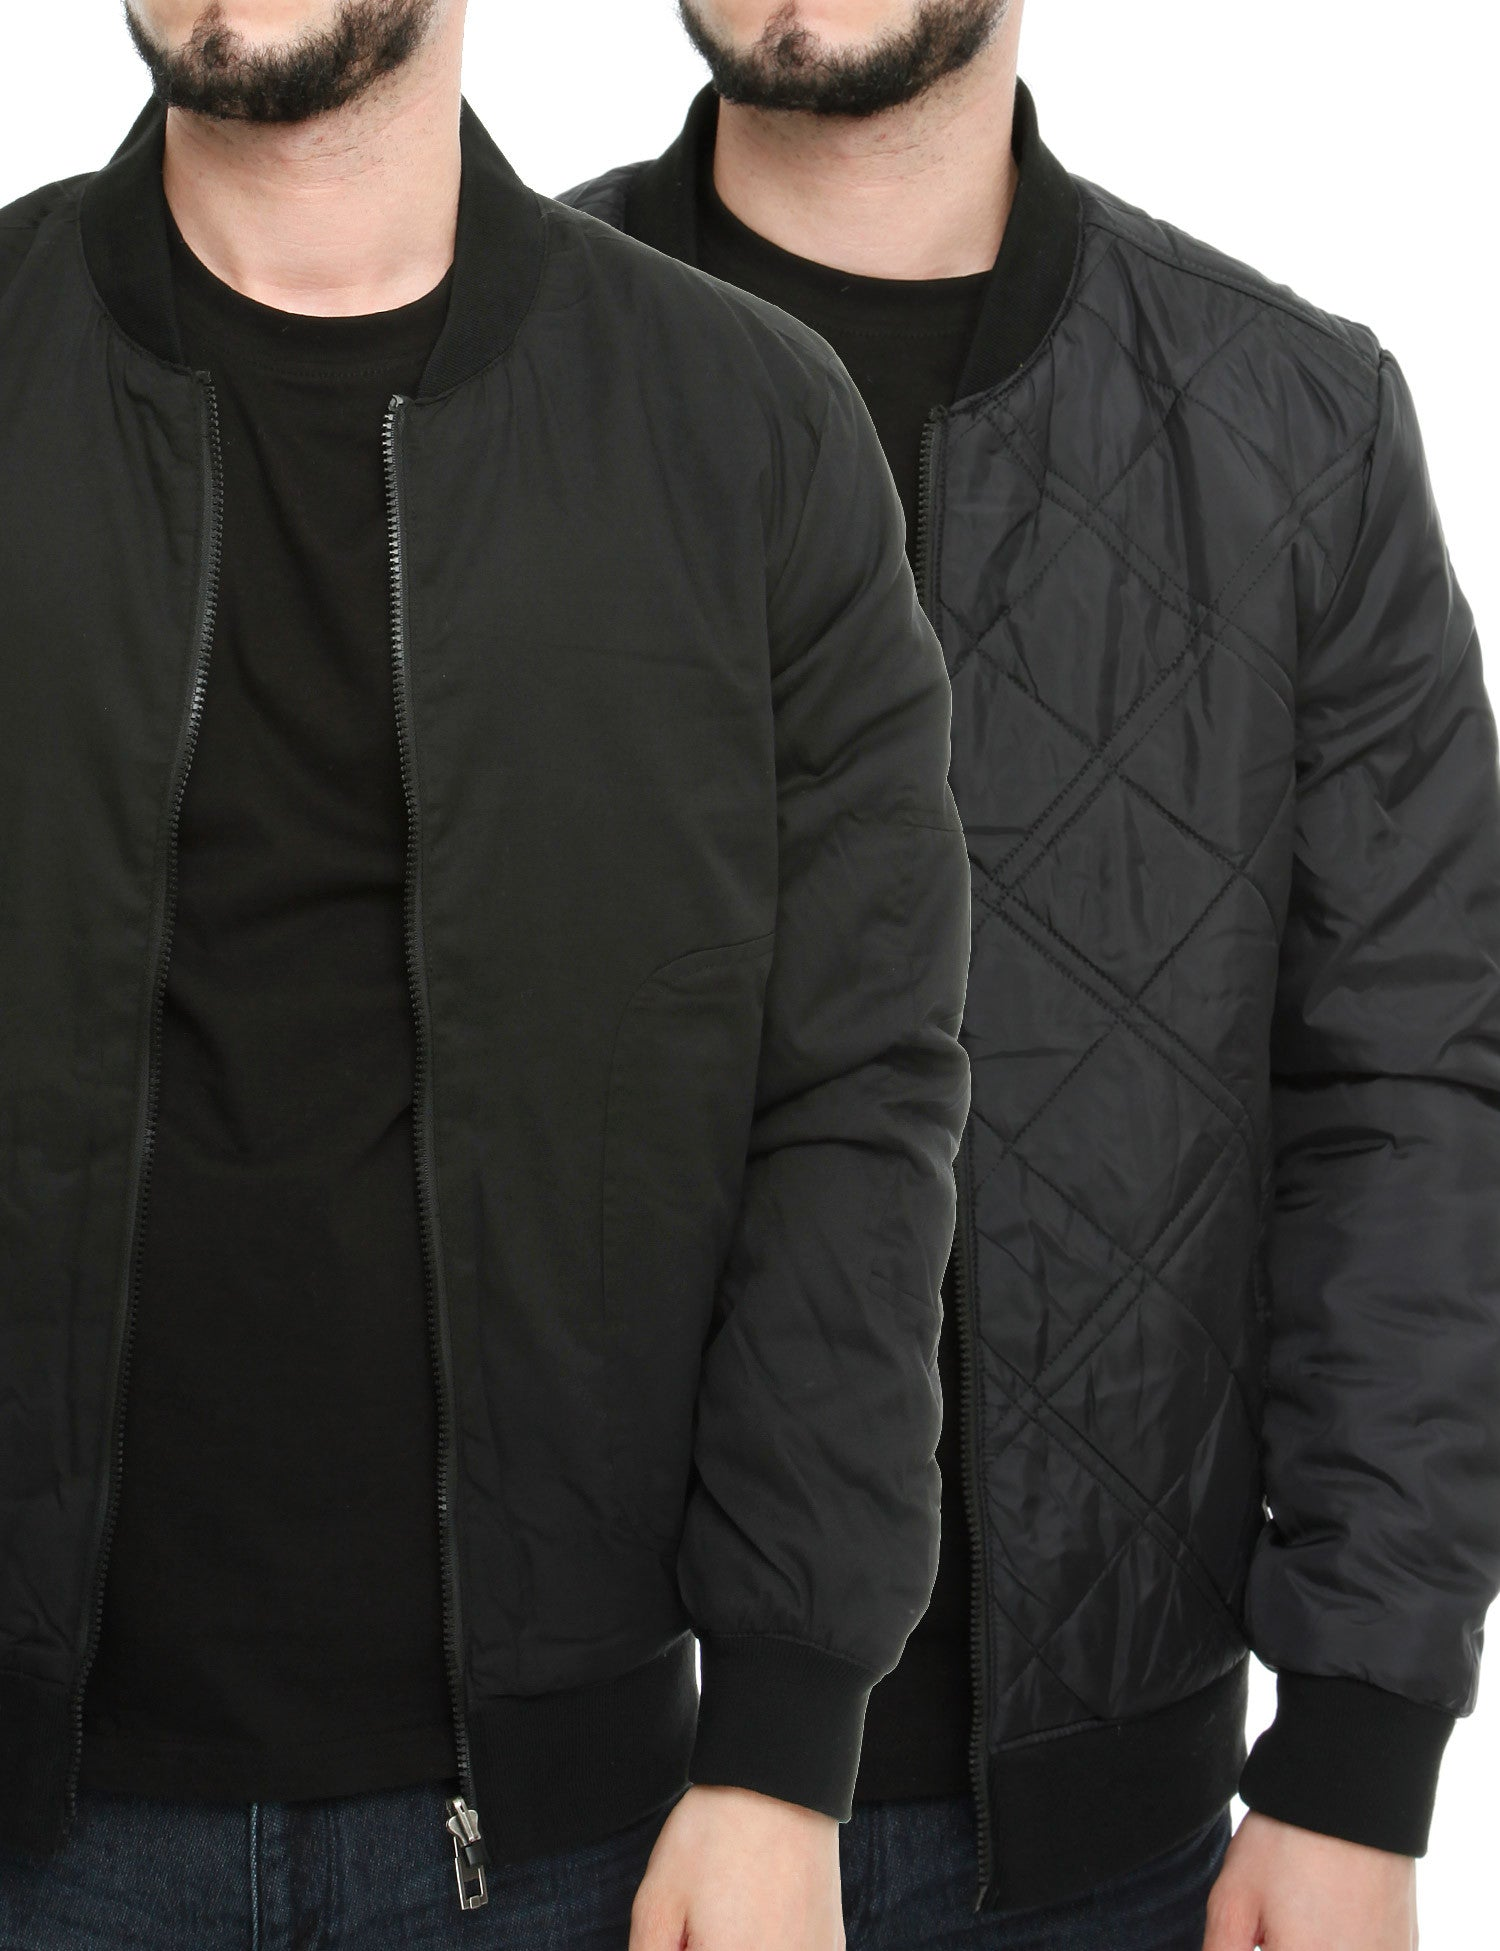 SK-5 SK-REV Reversible Jacket Black